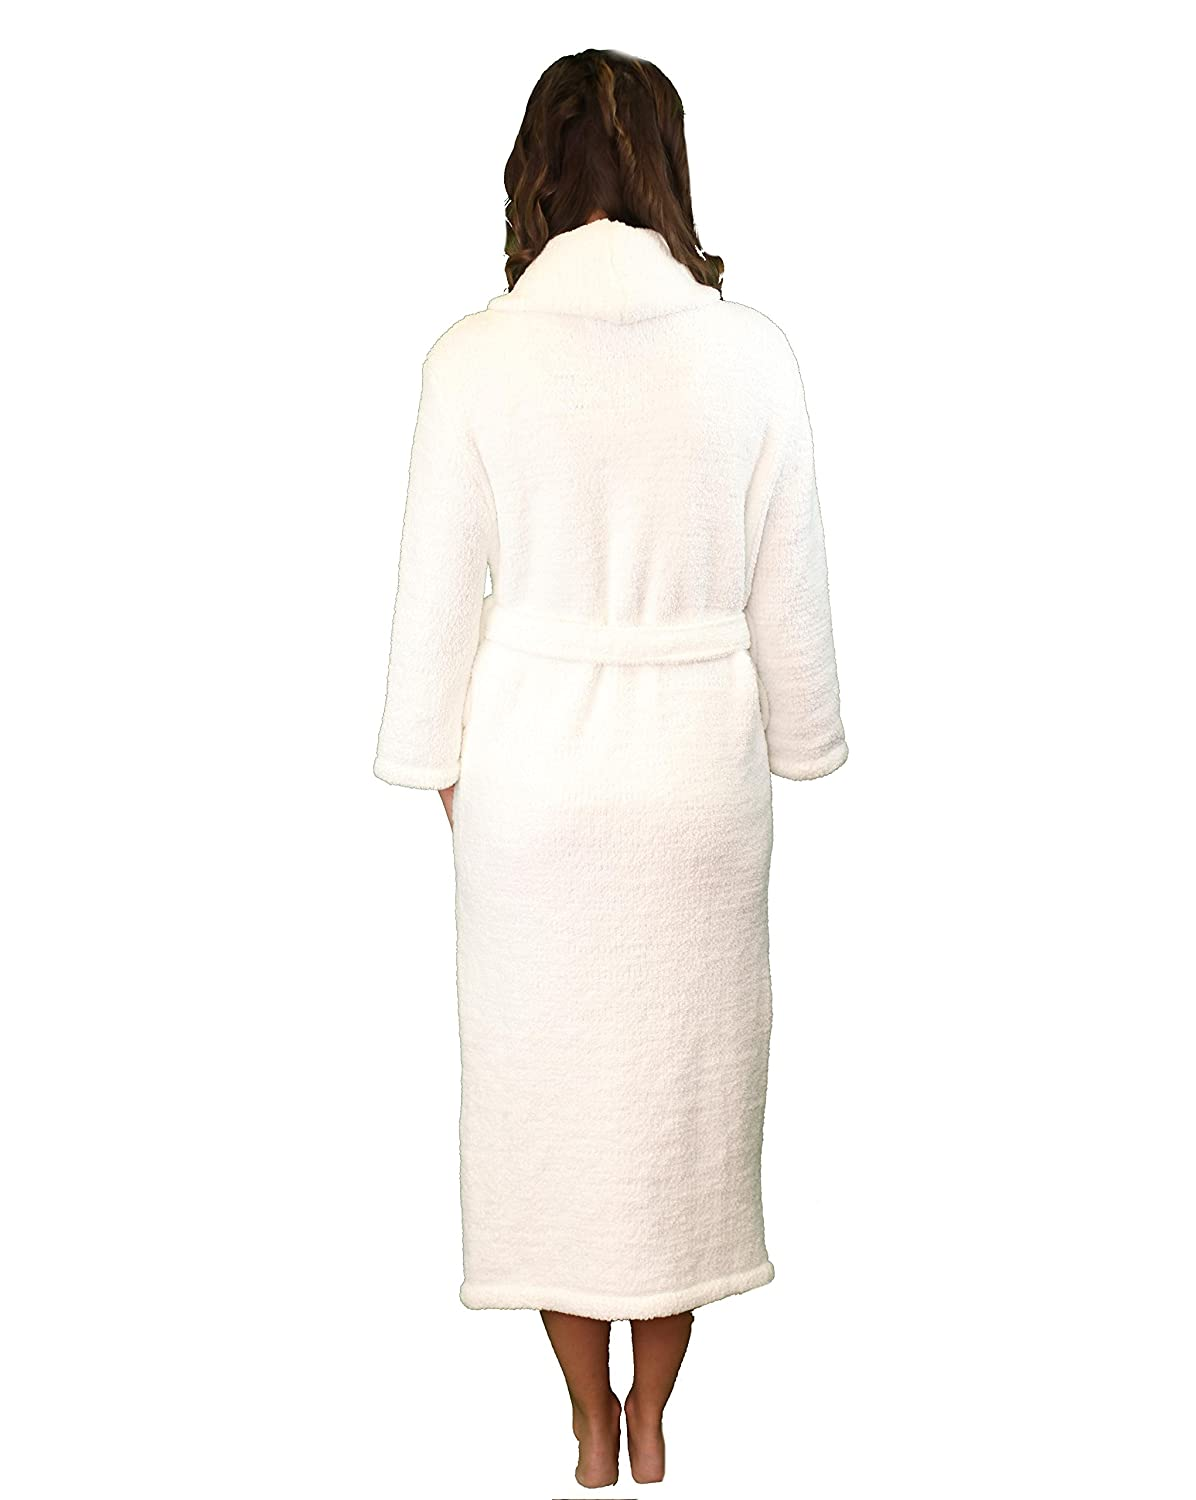 Plush Tresaro Chenille Bathrobe Warm /& Cozy Microfiber Robe Perfect for Women and Men Super-soft